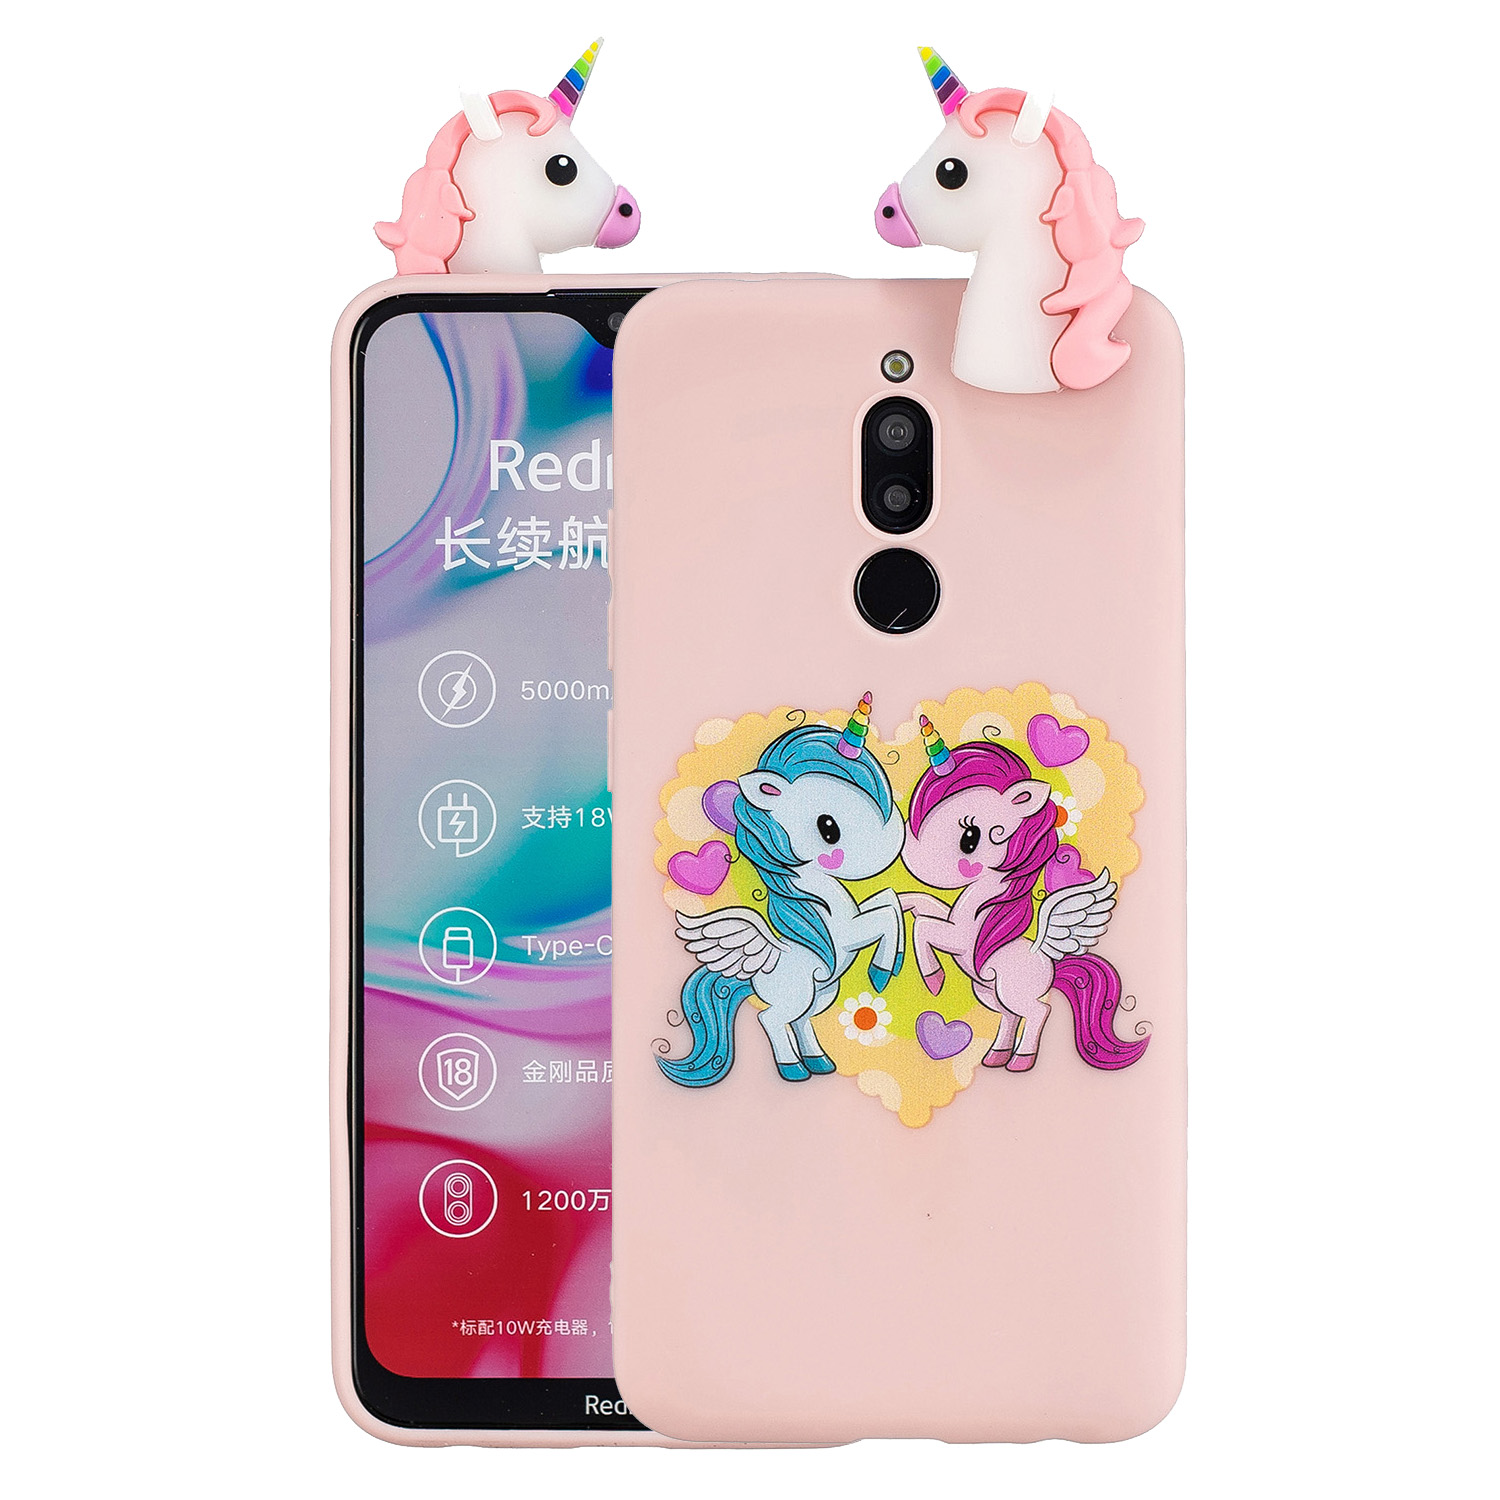 For Redmi 8/8A/5/Note 8T Mobile Phone Case Cute Cellphone Shell Soft TPU Cover with Cartoon Pig Duck Bear Kitten Lovely Pattern Pink